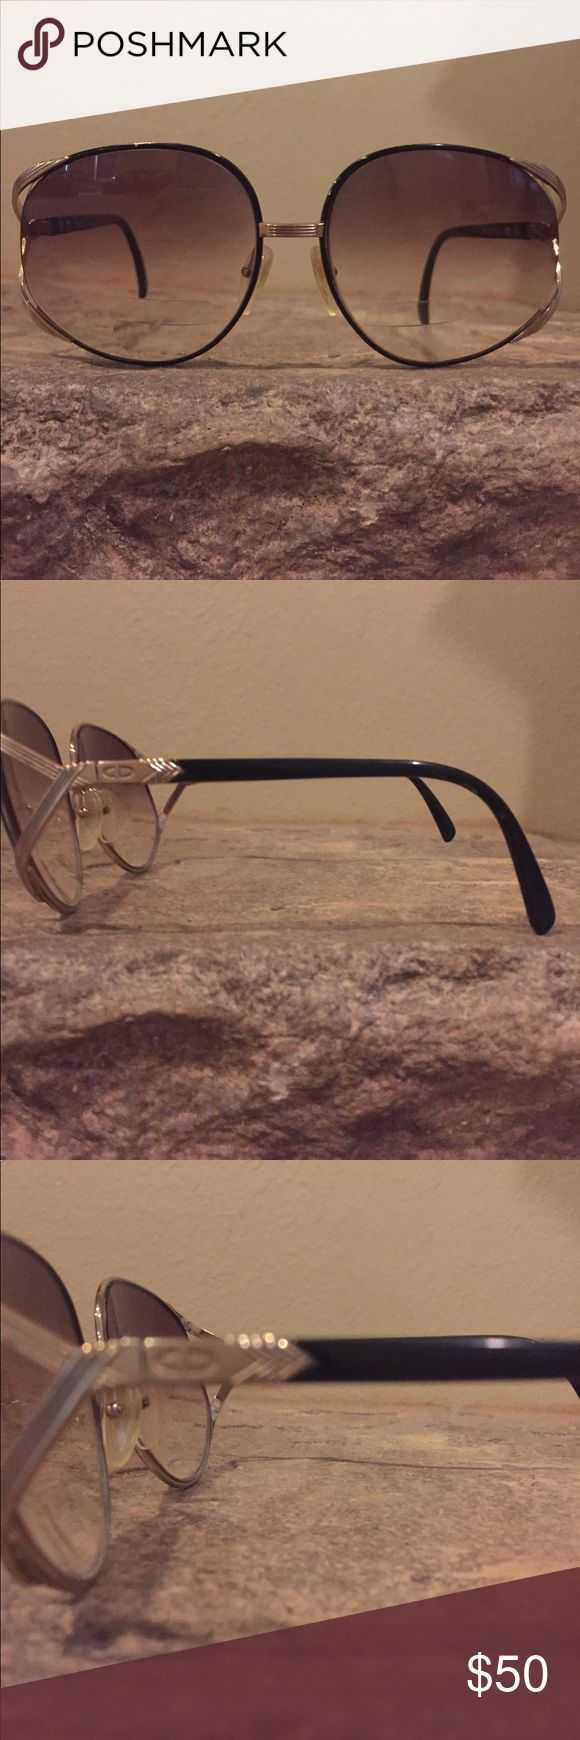 Authentic Christian Dior bifocal sunglasses 100% authentic. Can opt to have the bifocal removed for free at your local sunglass store .: that would make them regular glasses . Minor hair like little lines  ... overall in amazing shape Christian Dior Accessories Sunglasses